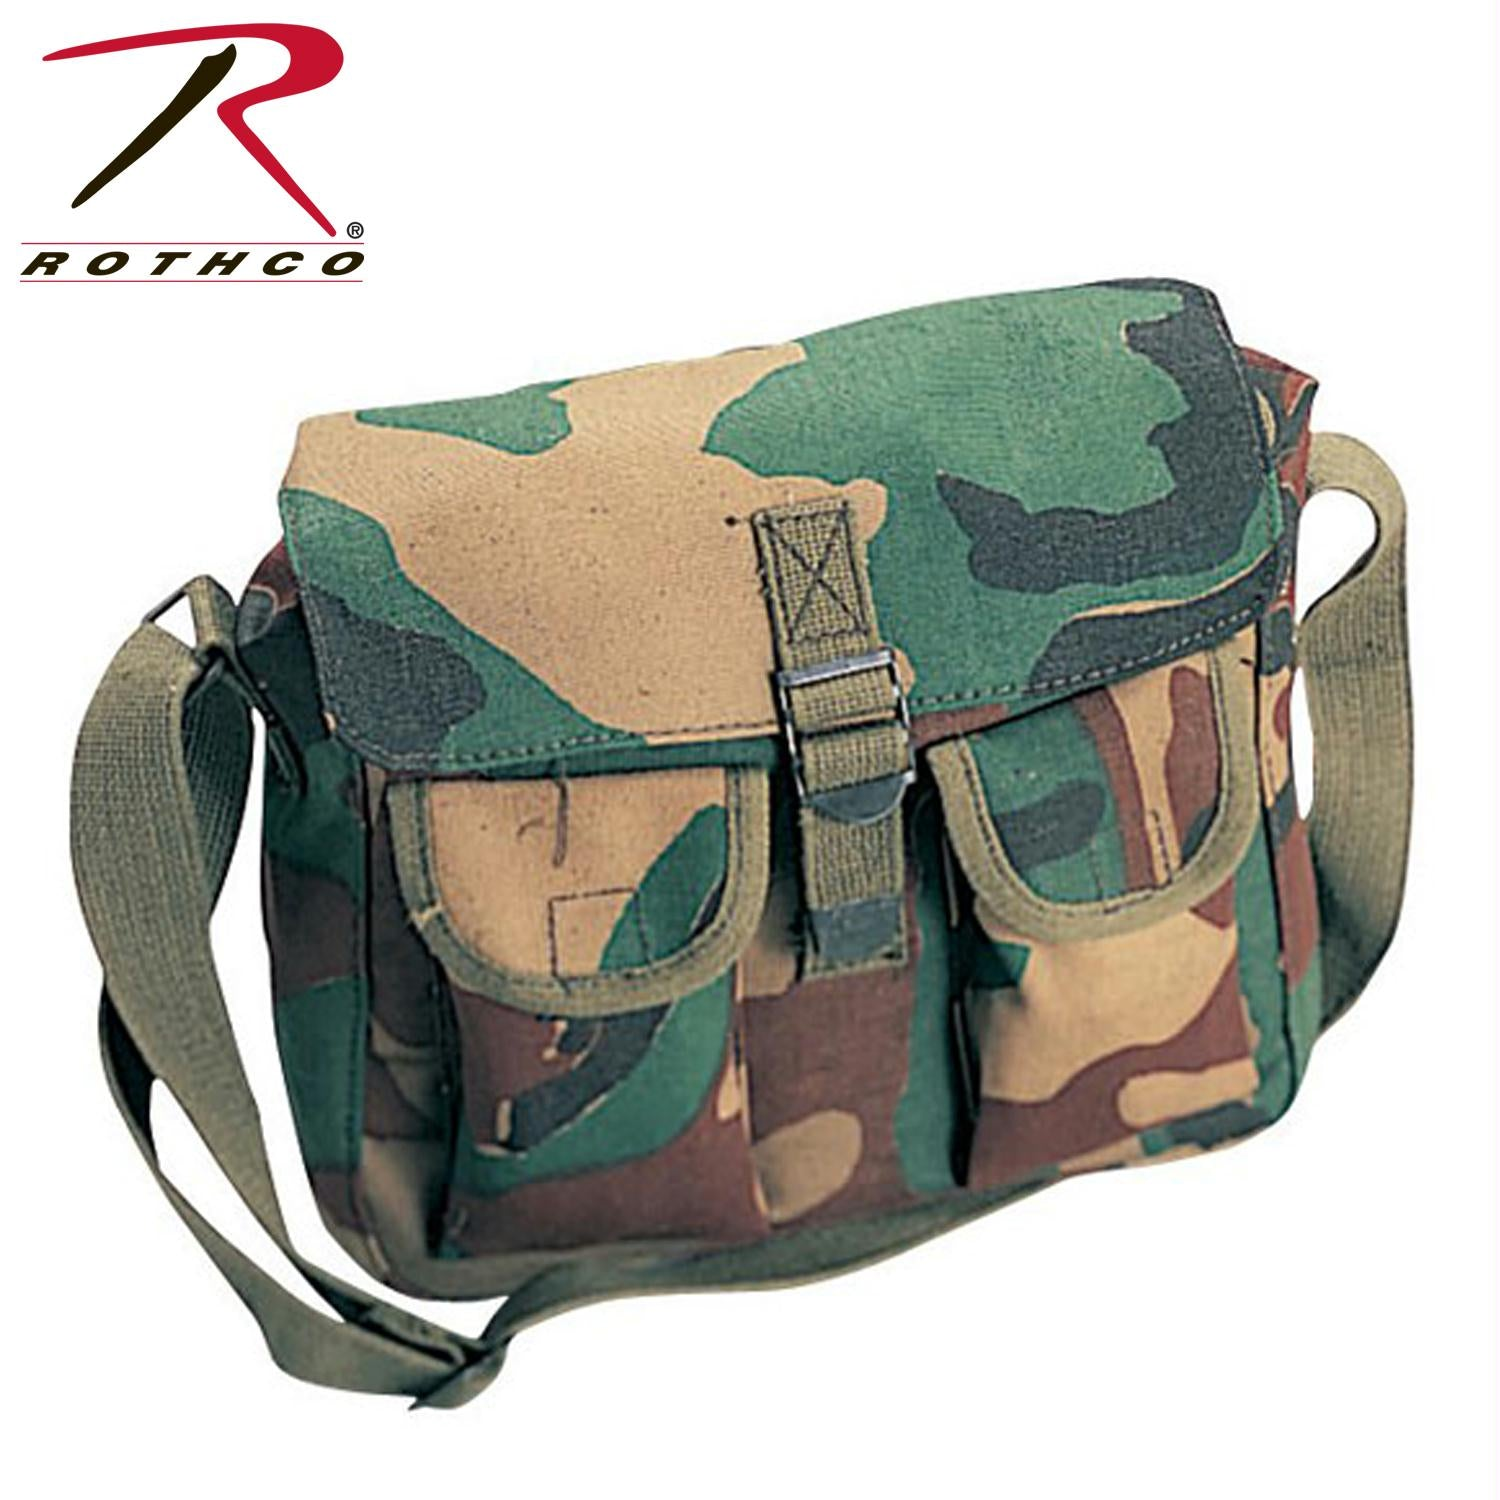 Rothco Canvas Ammo Shoulder Bag - Woodland Camo